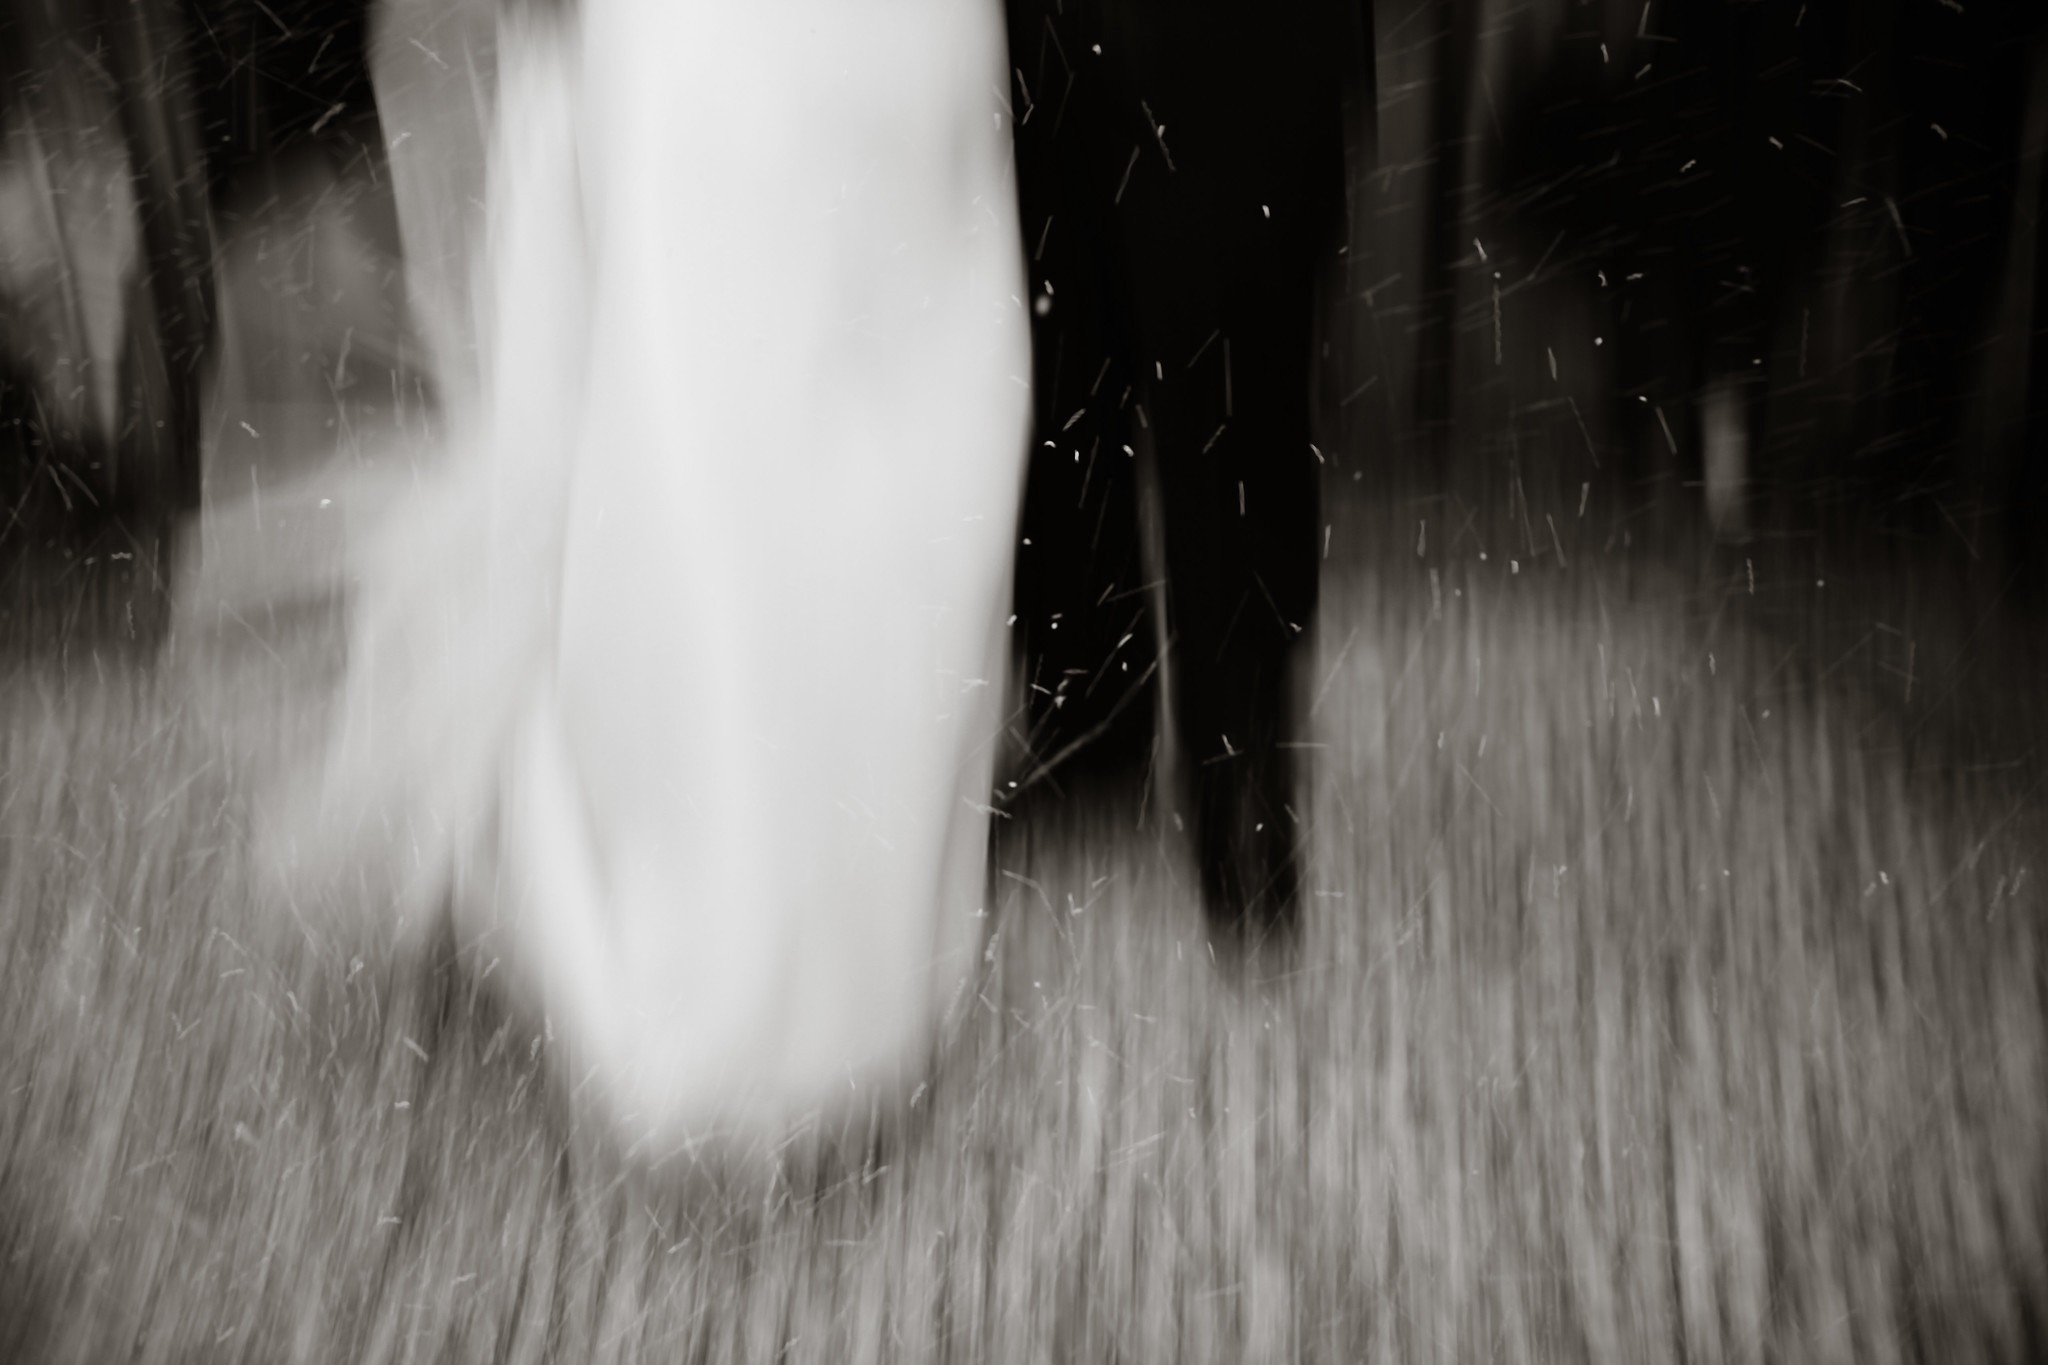 A blurry black-and-white image of a presumable bride and groom (the dress and black pants).